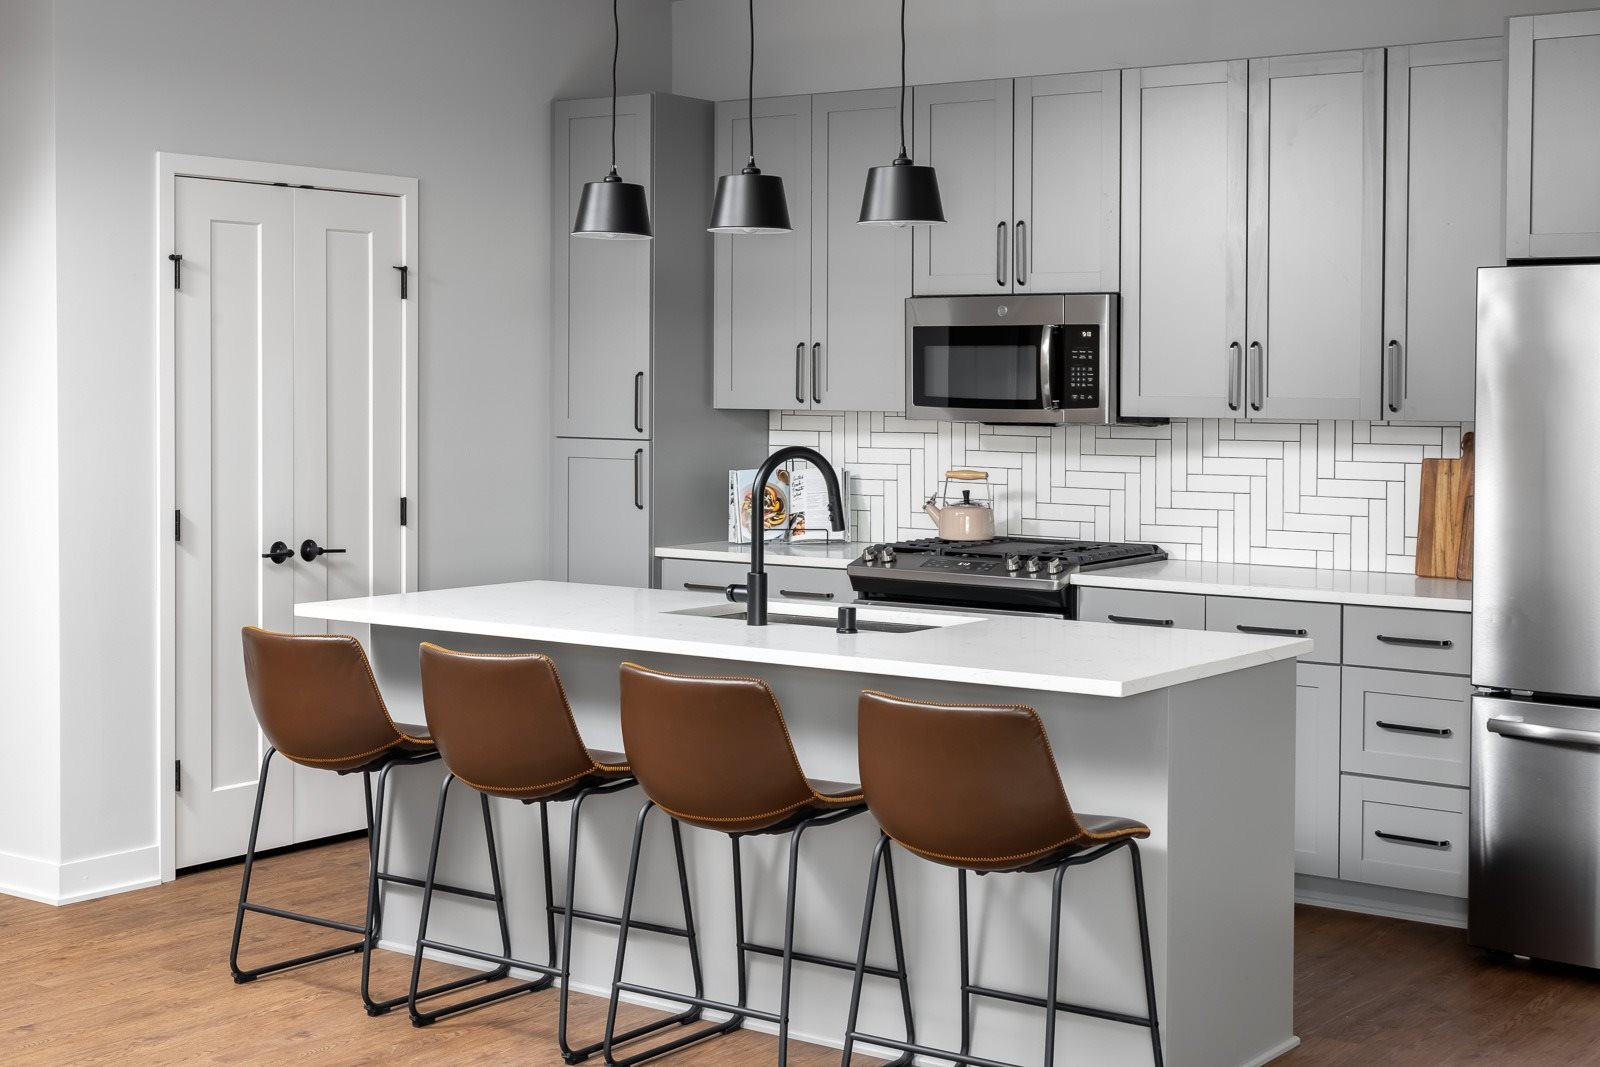 eat-in kitchen with designer fixtures and finishes in two bedroom apartment model